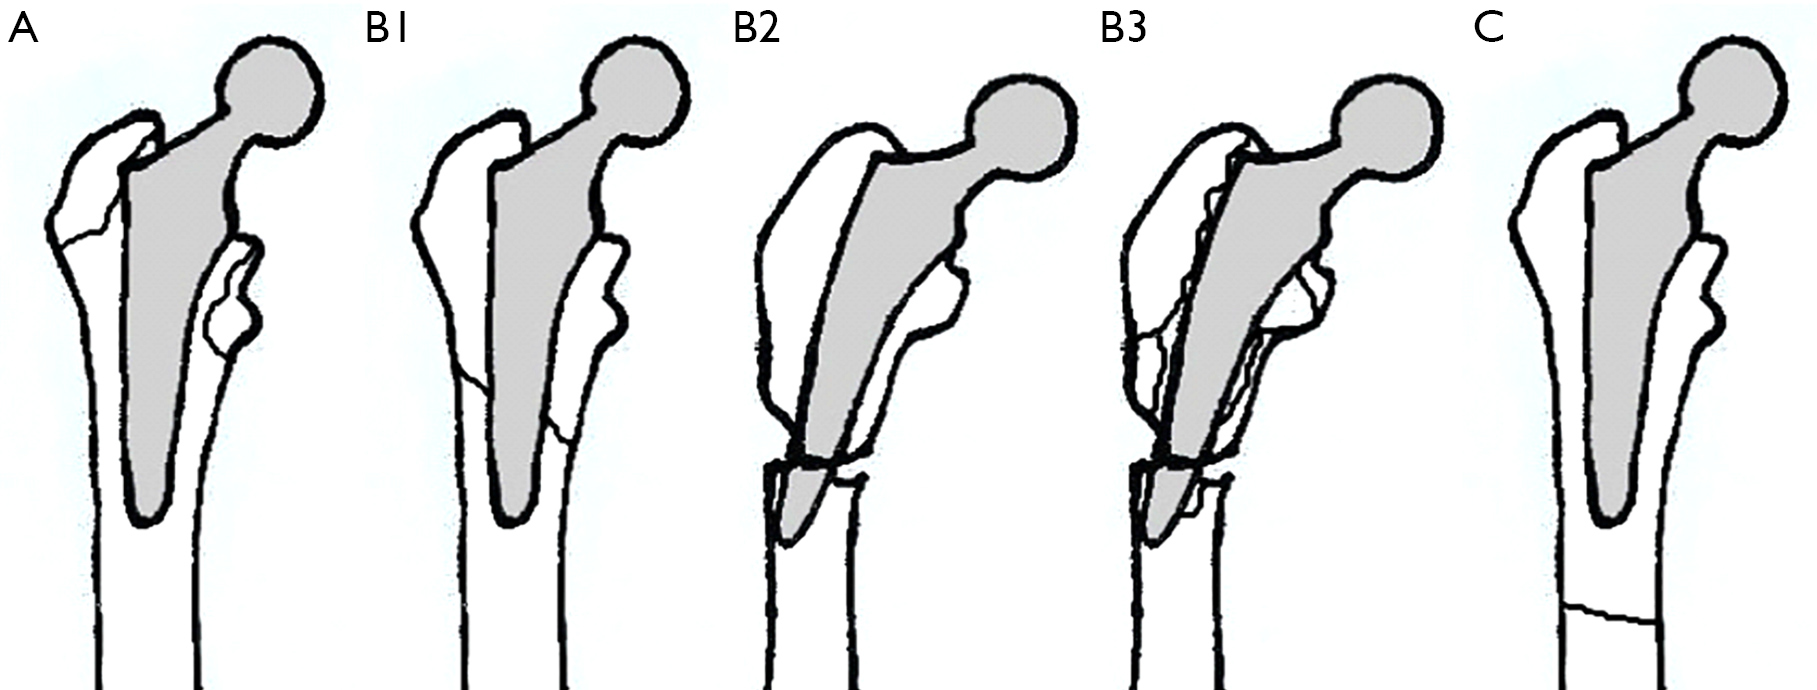 Management of peri-prosthetic fractures around total hip